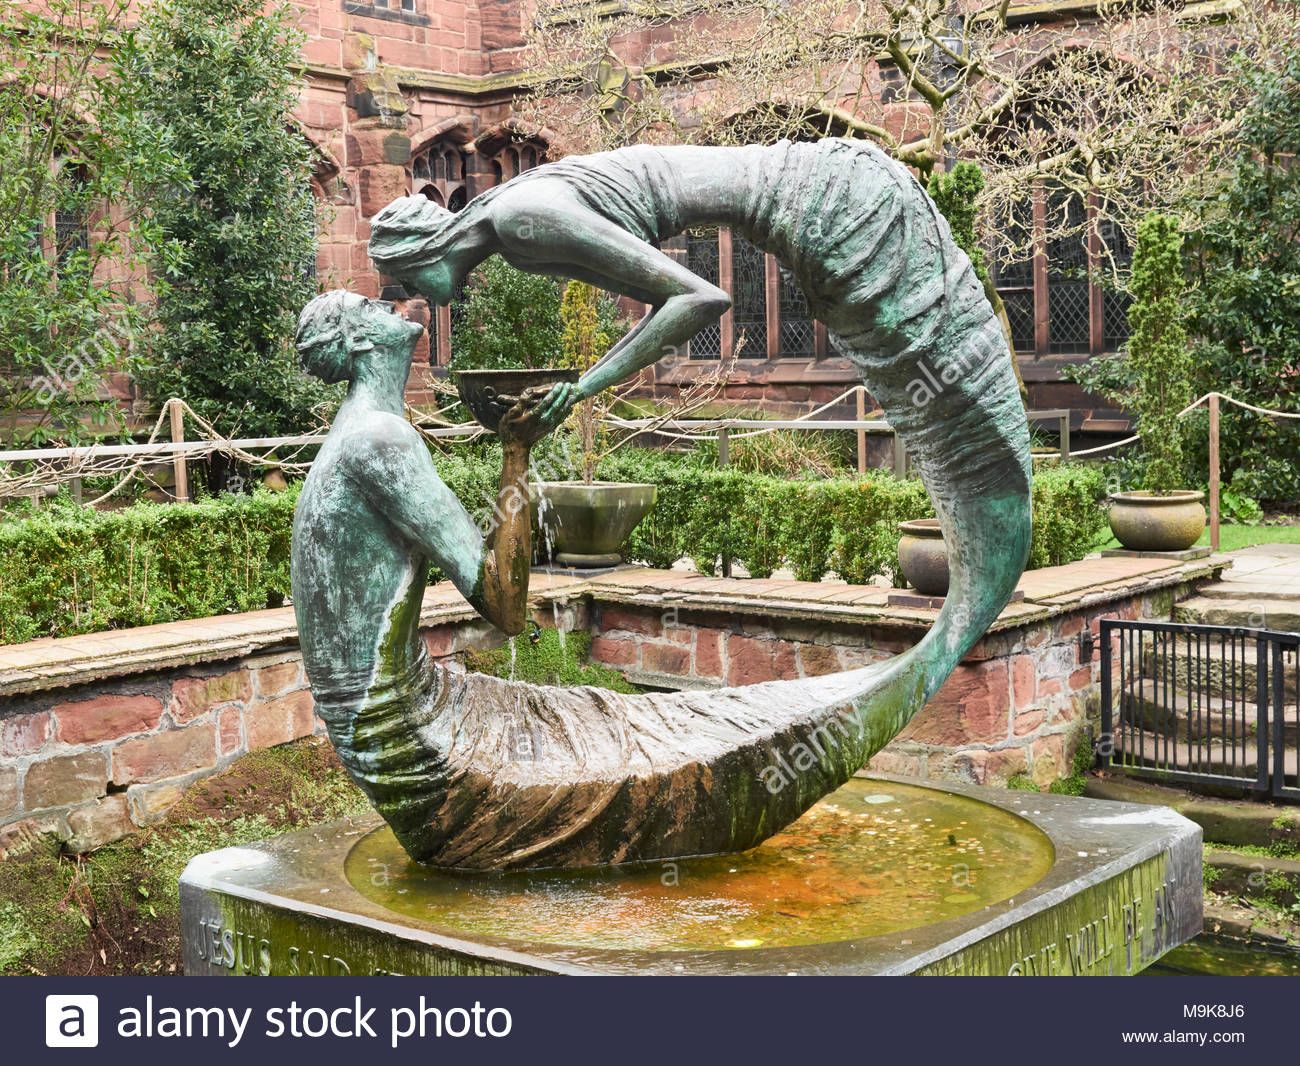 The water of life sculpture in cloister garth gardens in chester cathedral in cheshire england uk - Stock Image